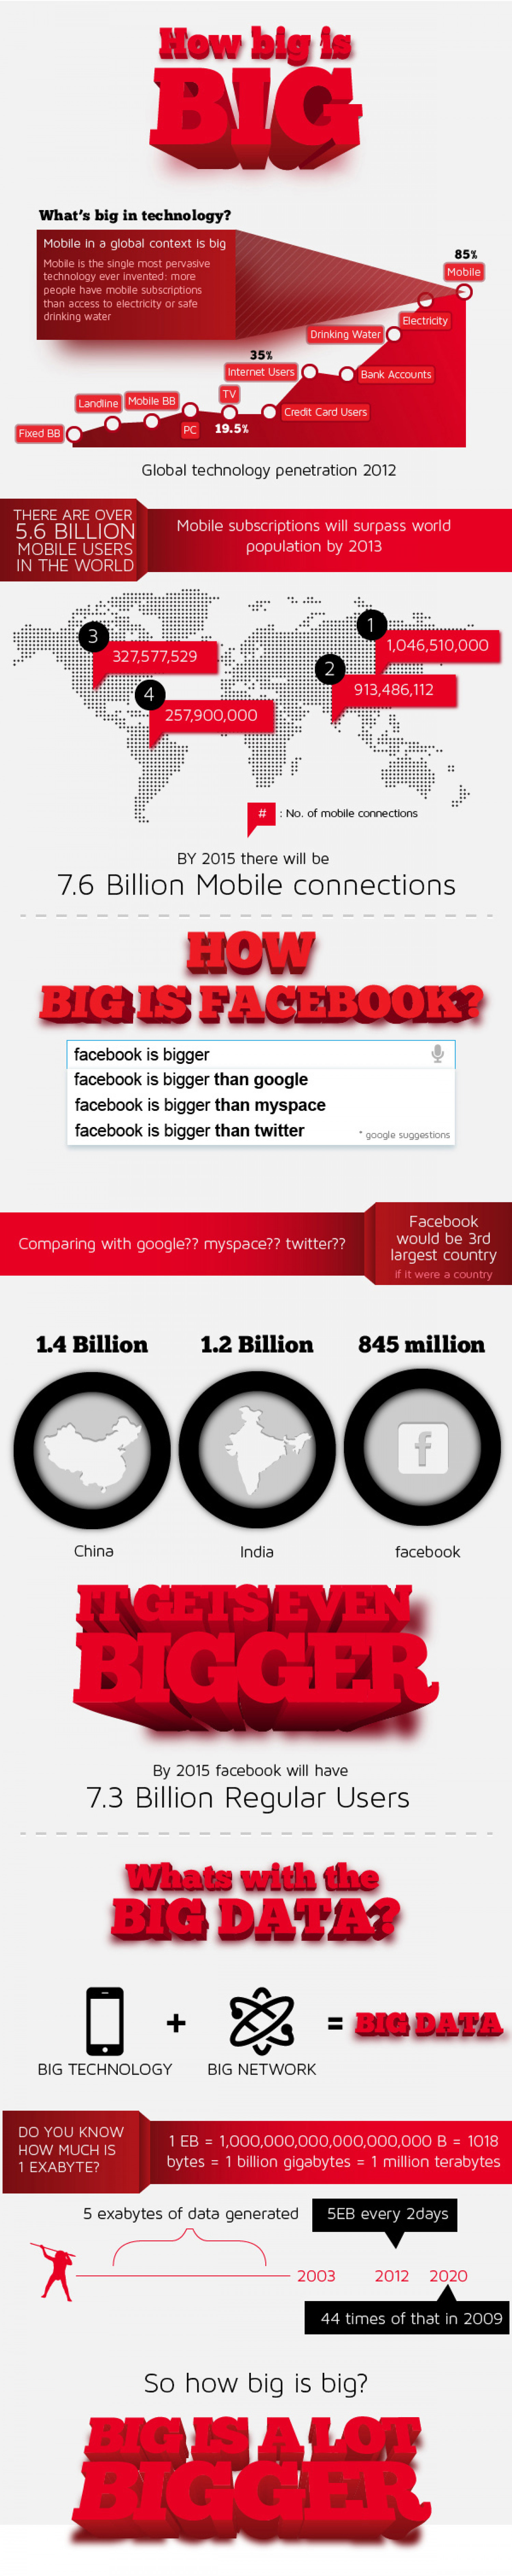 How big is BIG? Infographic